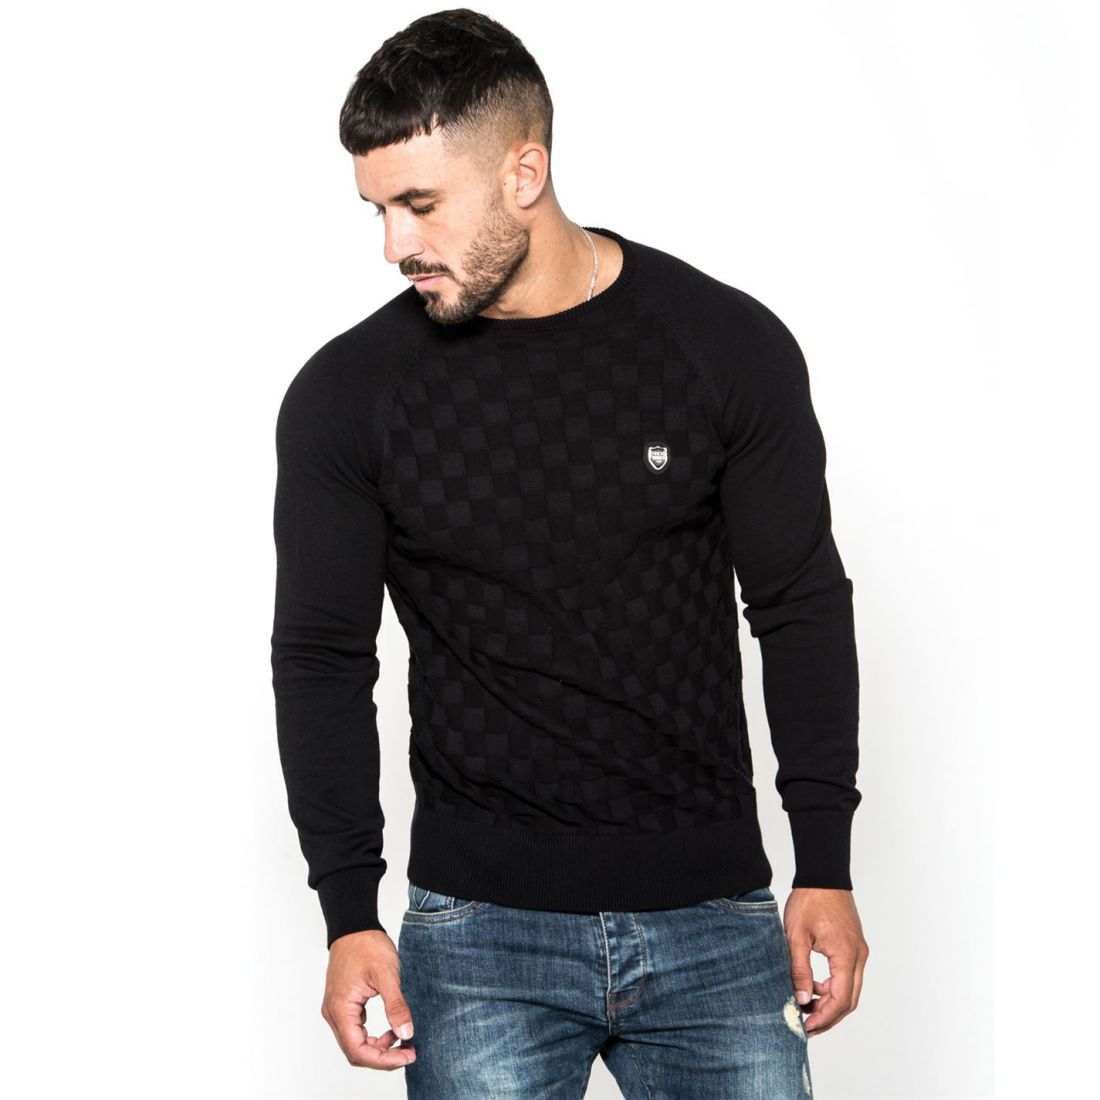 883 Police Charmer Knit Mens Gents Lined Knitwear